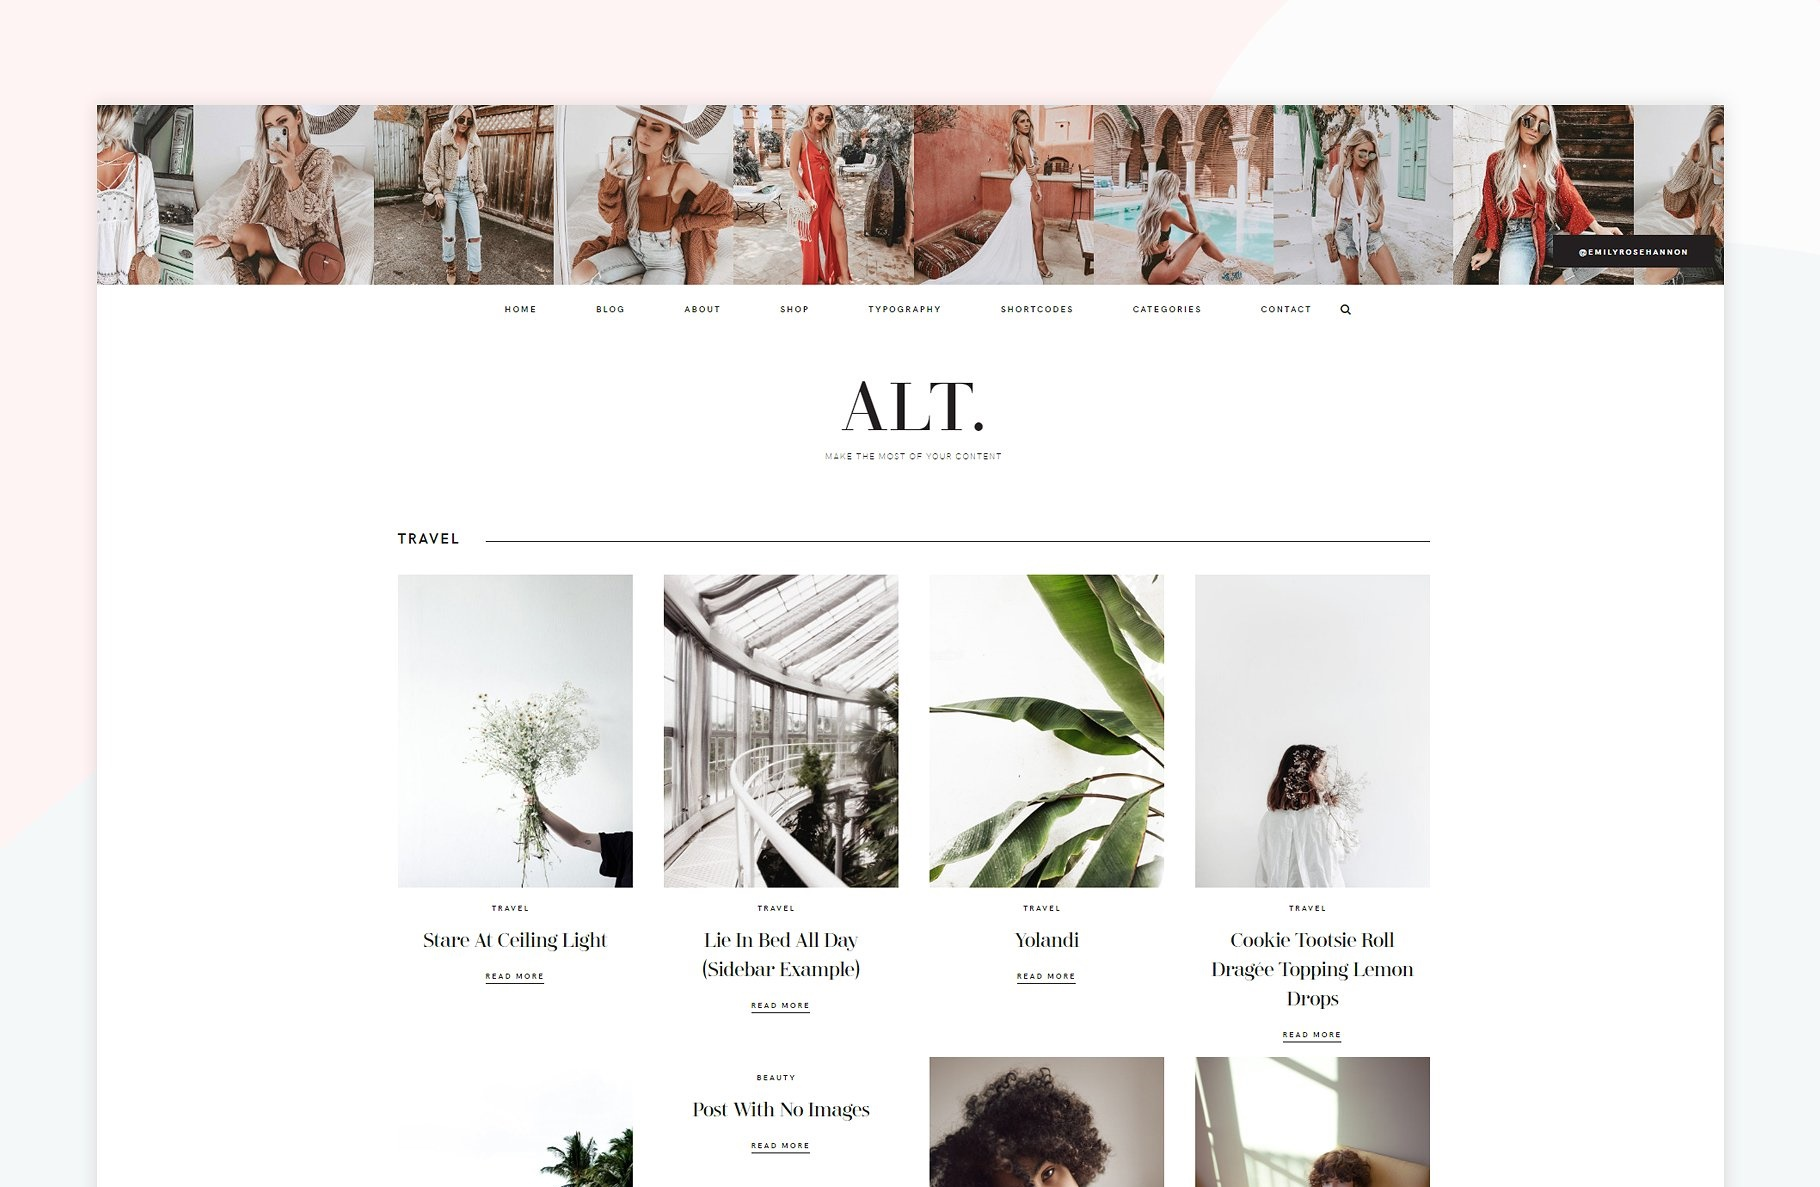 ALT - A Wordpress Genesis Theme - Buy Now $39 - WordPress Blog Theme, WordPress Blog Themes, Blogger Templates, Lifestyle WordPress Blog Theme, Minimalist WordPress Blog Theme, Feminine WordPress Blog Theme, Simple WordPress Blog Theme, Business WordPress Theme, Responsive WordPress Theme, Modern WordPress Theme, Elegant WordPress Theme, Magazine WordPress Theme https://avemateiu.com/themes/